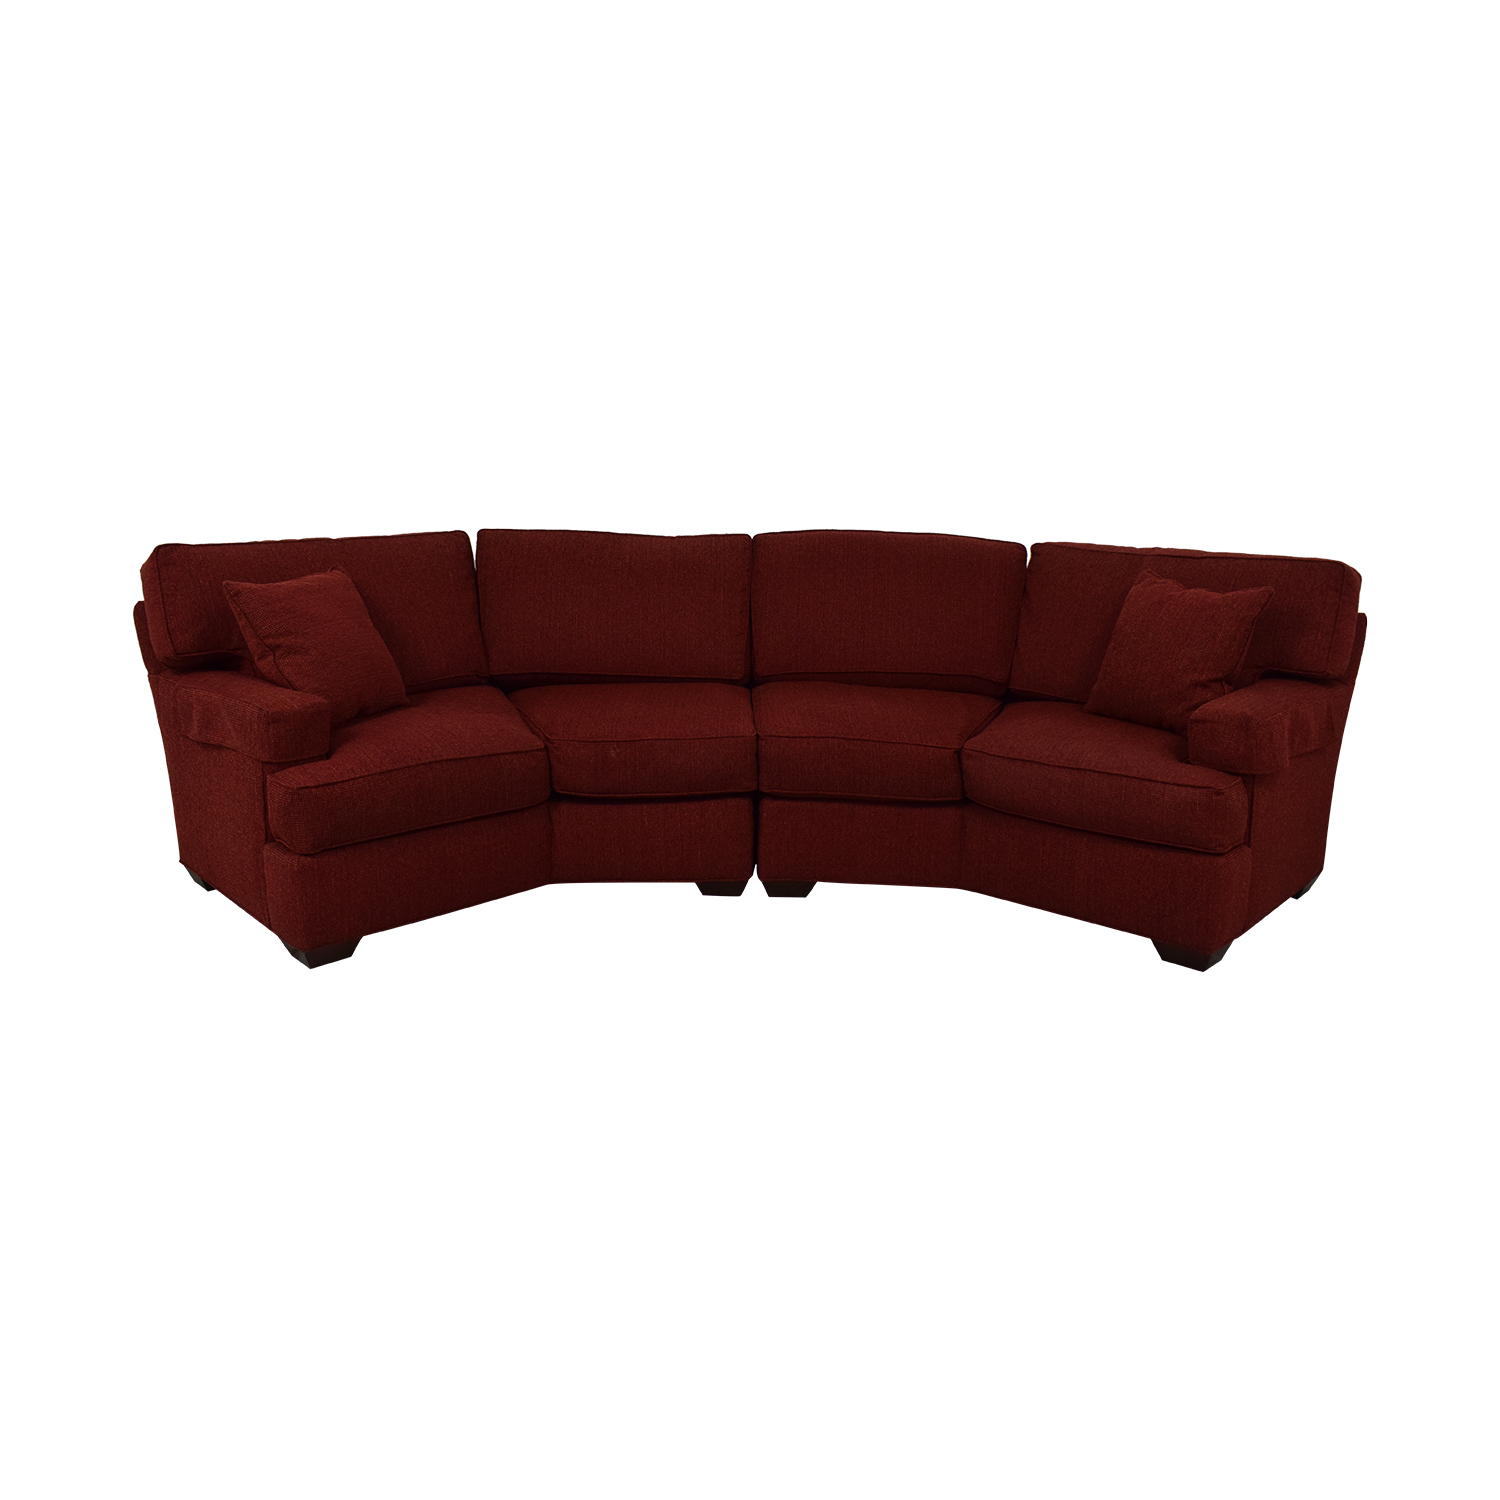 Pearson Red Wedge Sectional Sofa / Sofas